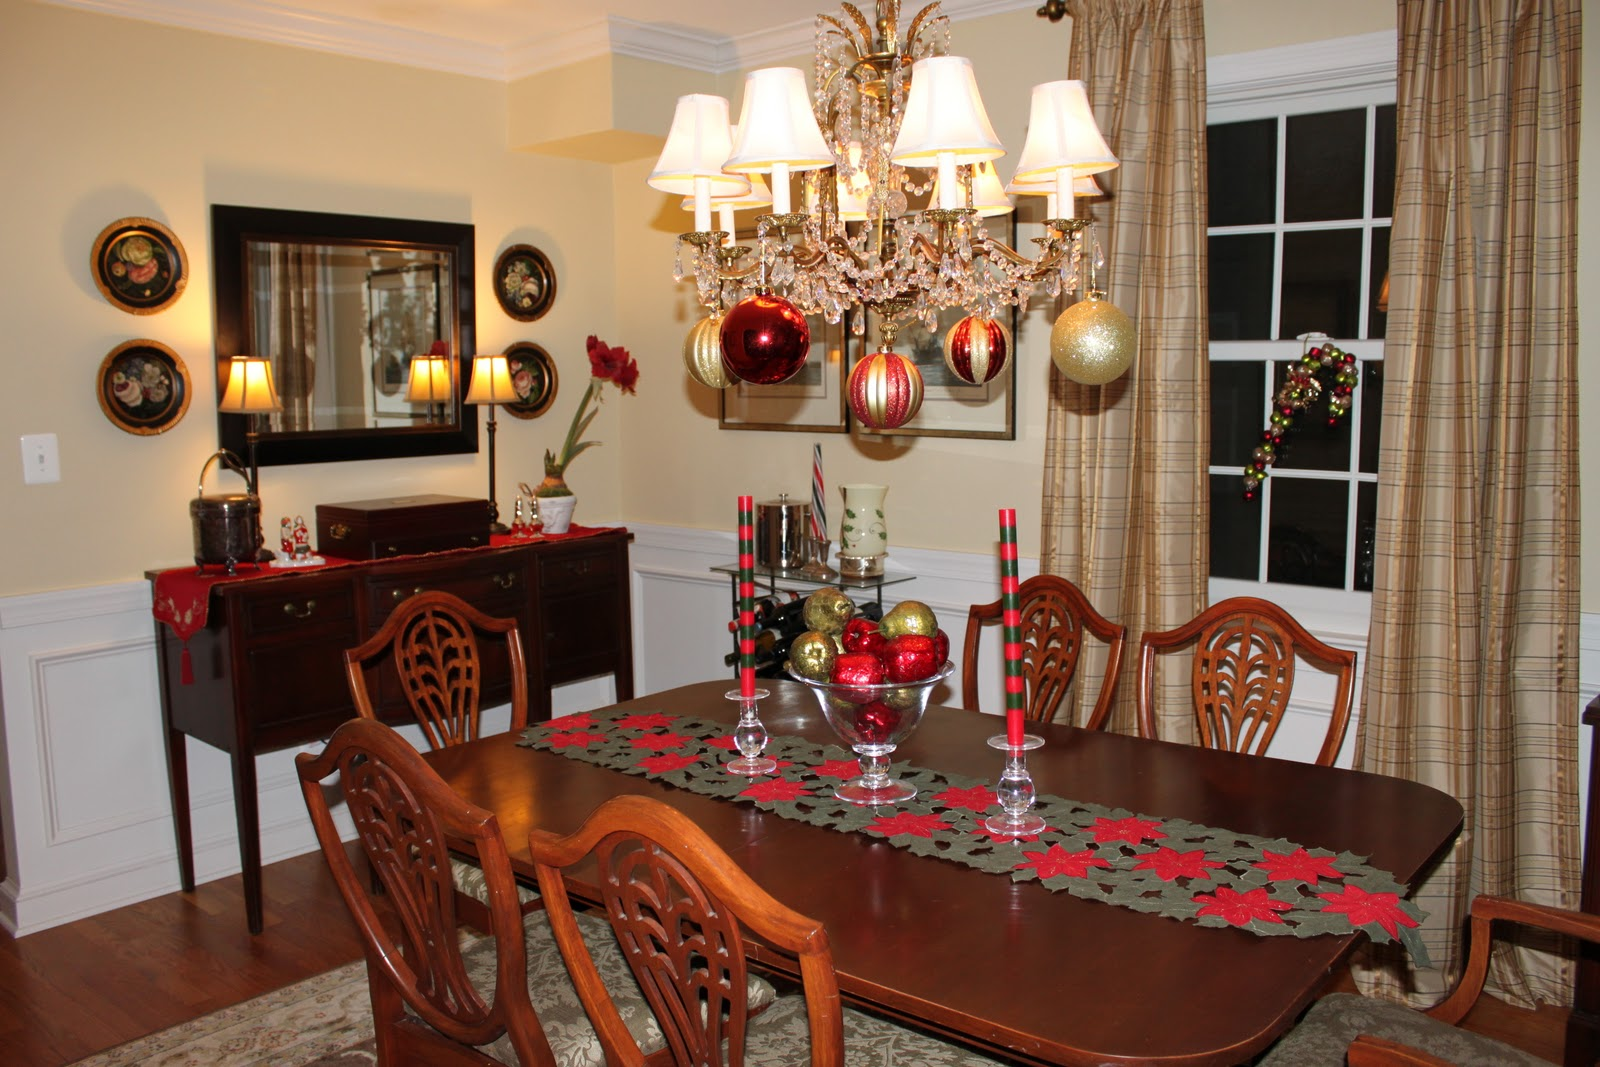 flashing bright classic chandelier with christmas ball above simple floral red centerpiece on wooden rectangle table